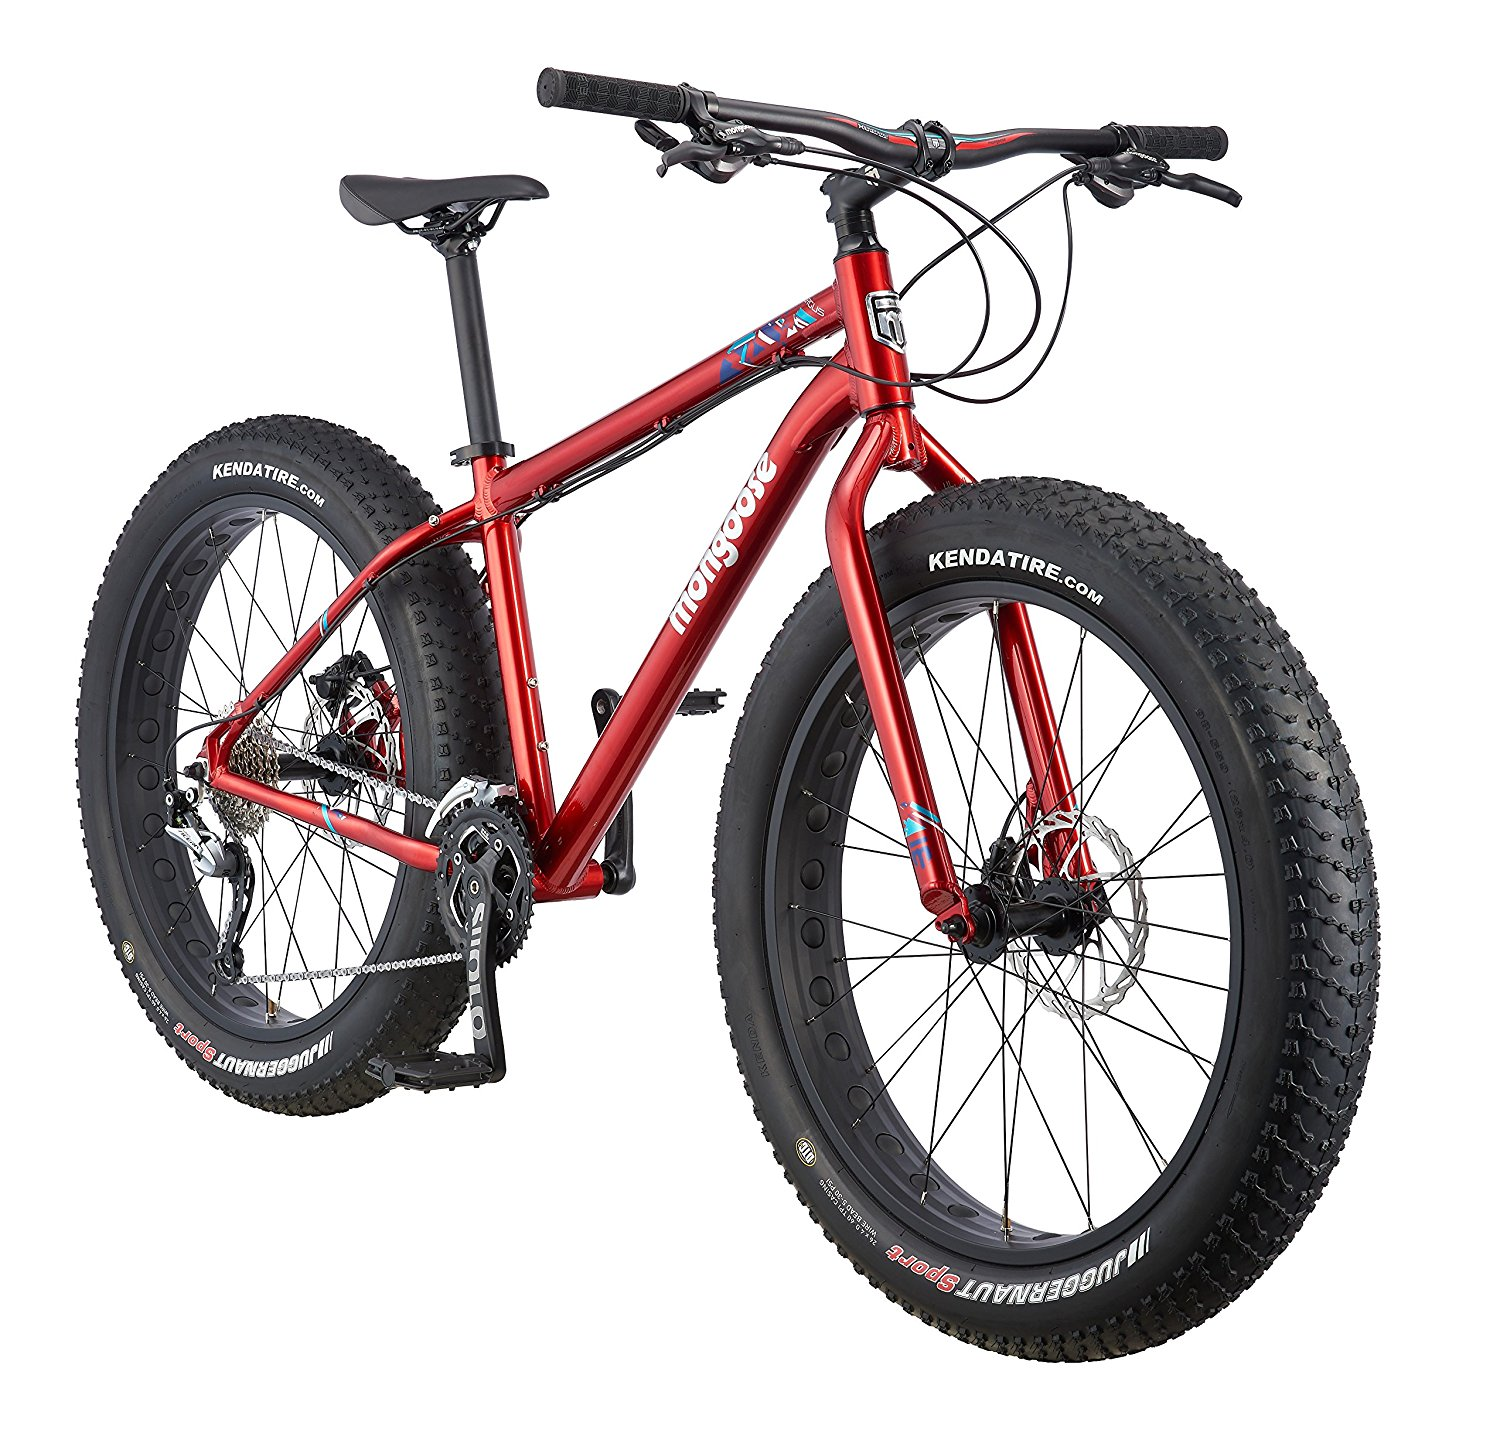 "Mongoose Argus Fat Tire Mountain Bike with 26"" Wheels – Available in 3 Frame Sizes and 3 Colors"